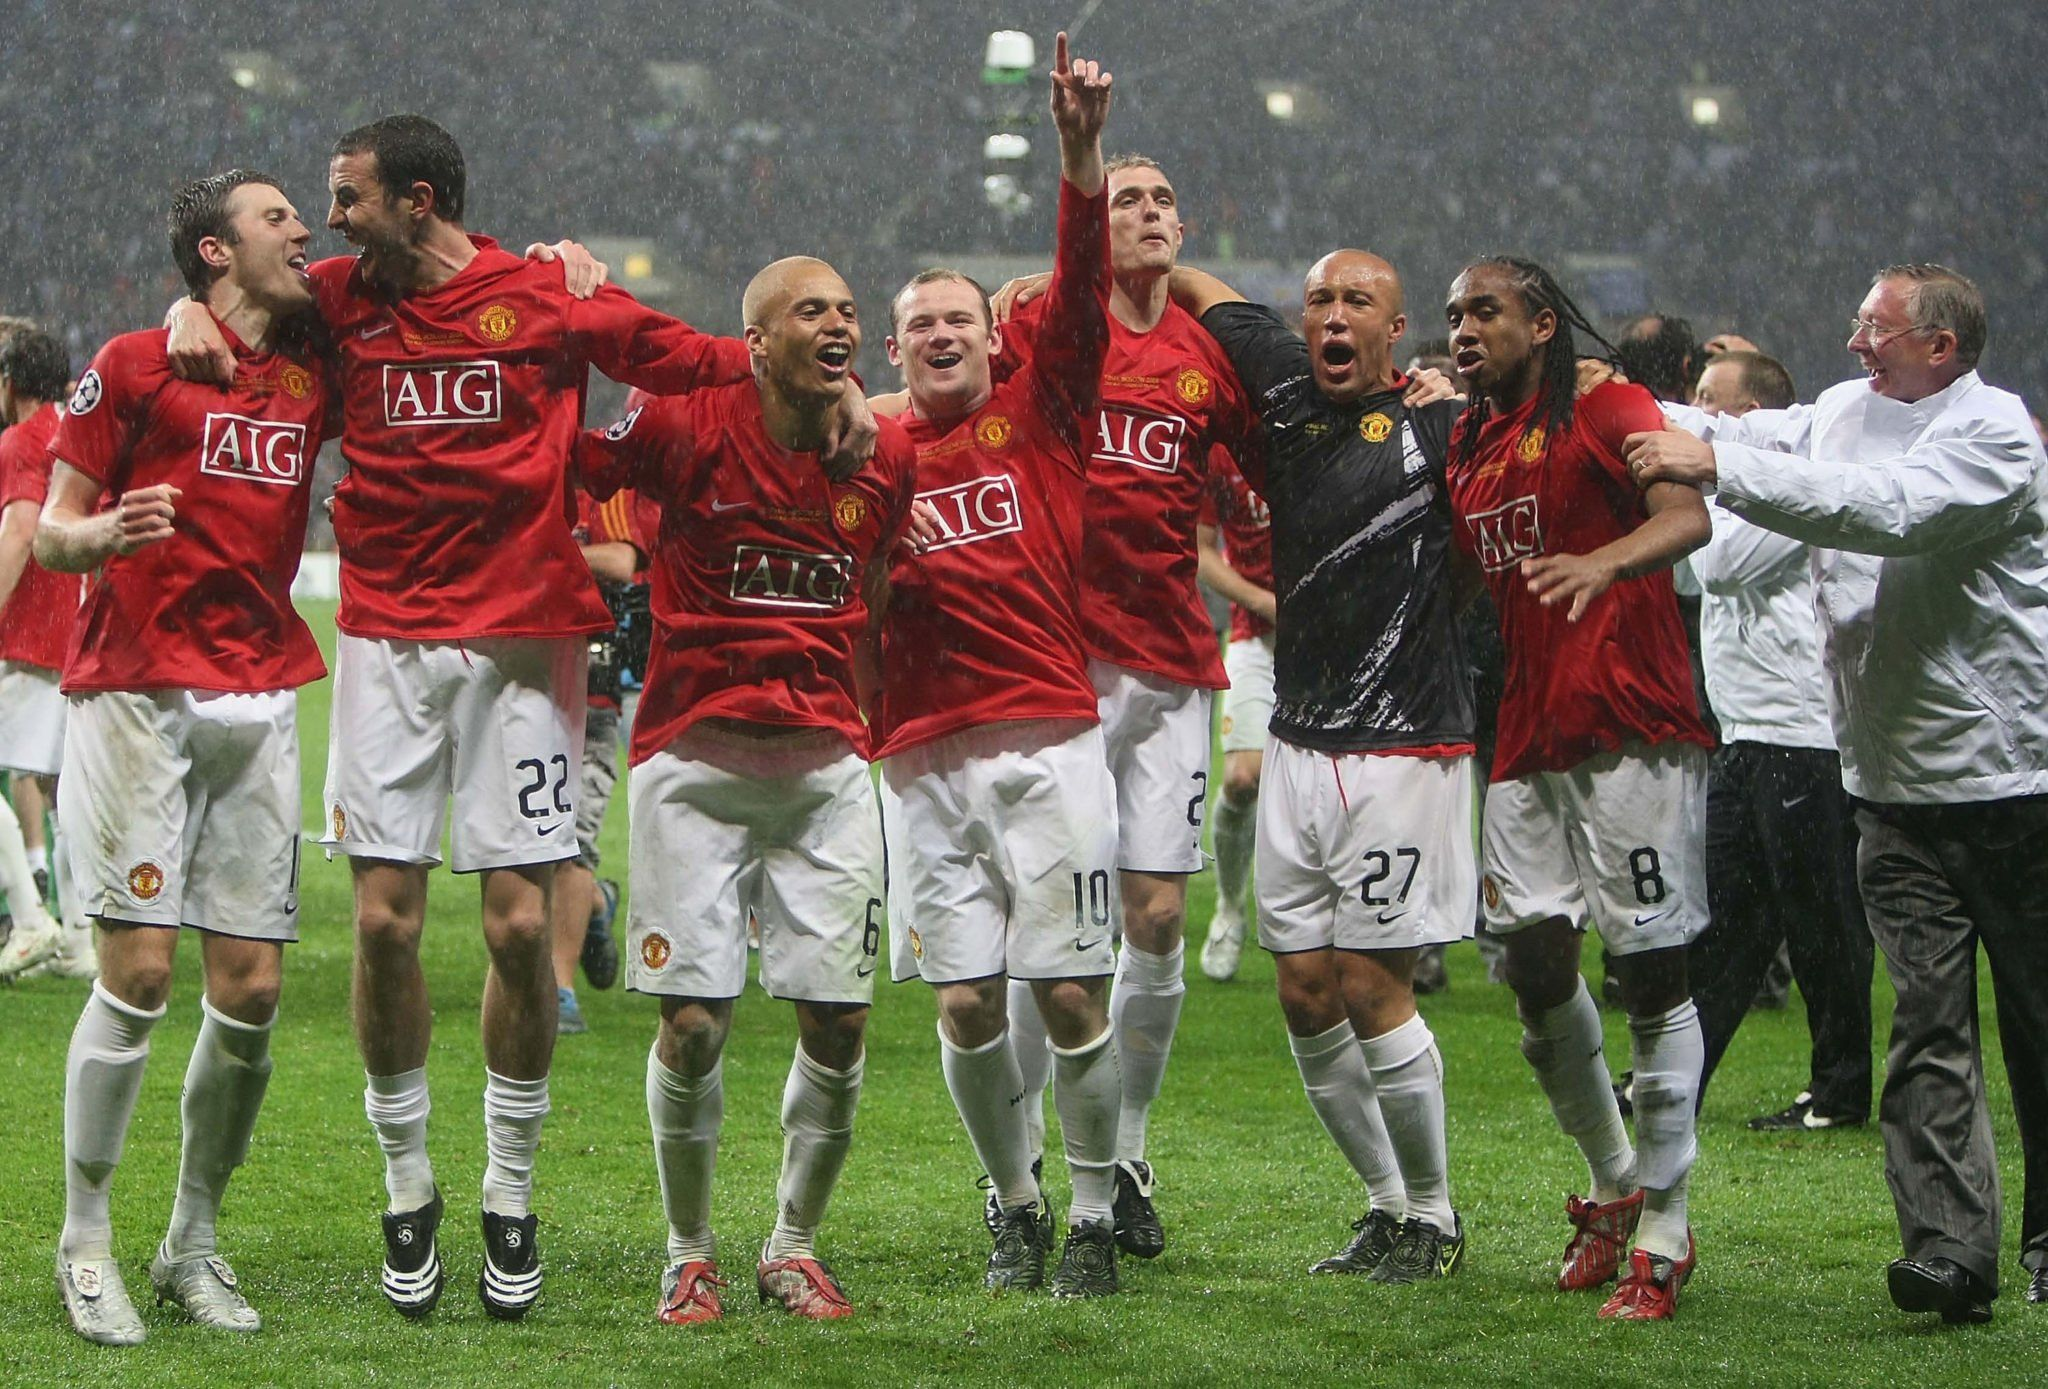 Rooney V Ferguson How Fire Turned To Ice In 2020 Manchester United Manchester United Football Club Manchester United Legends